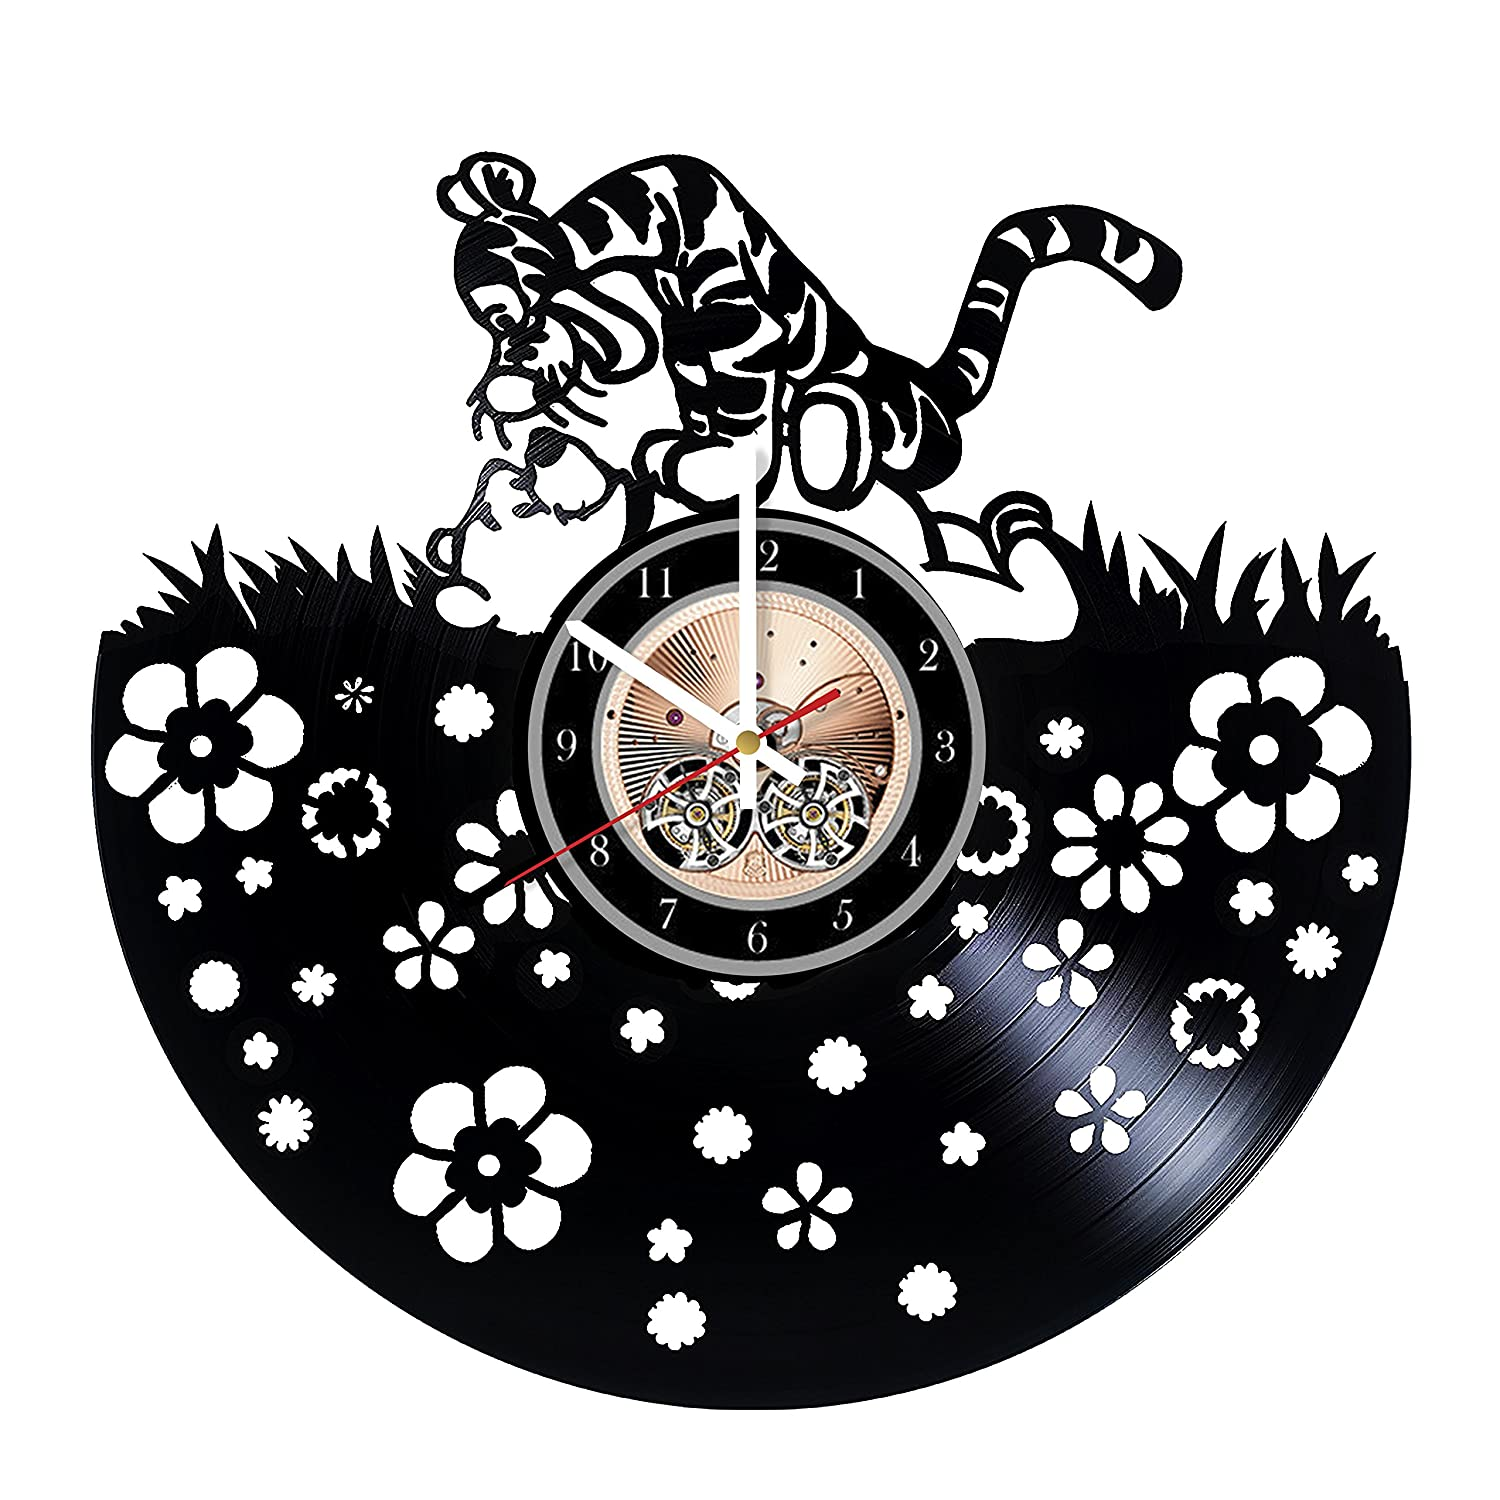 Tigger and Winnie the Pooh HANDMADE Vinyl Record Wall Clock - Get unique bedroom or living room wall decor - Gift ideas for him and her